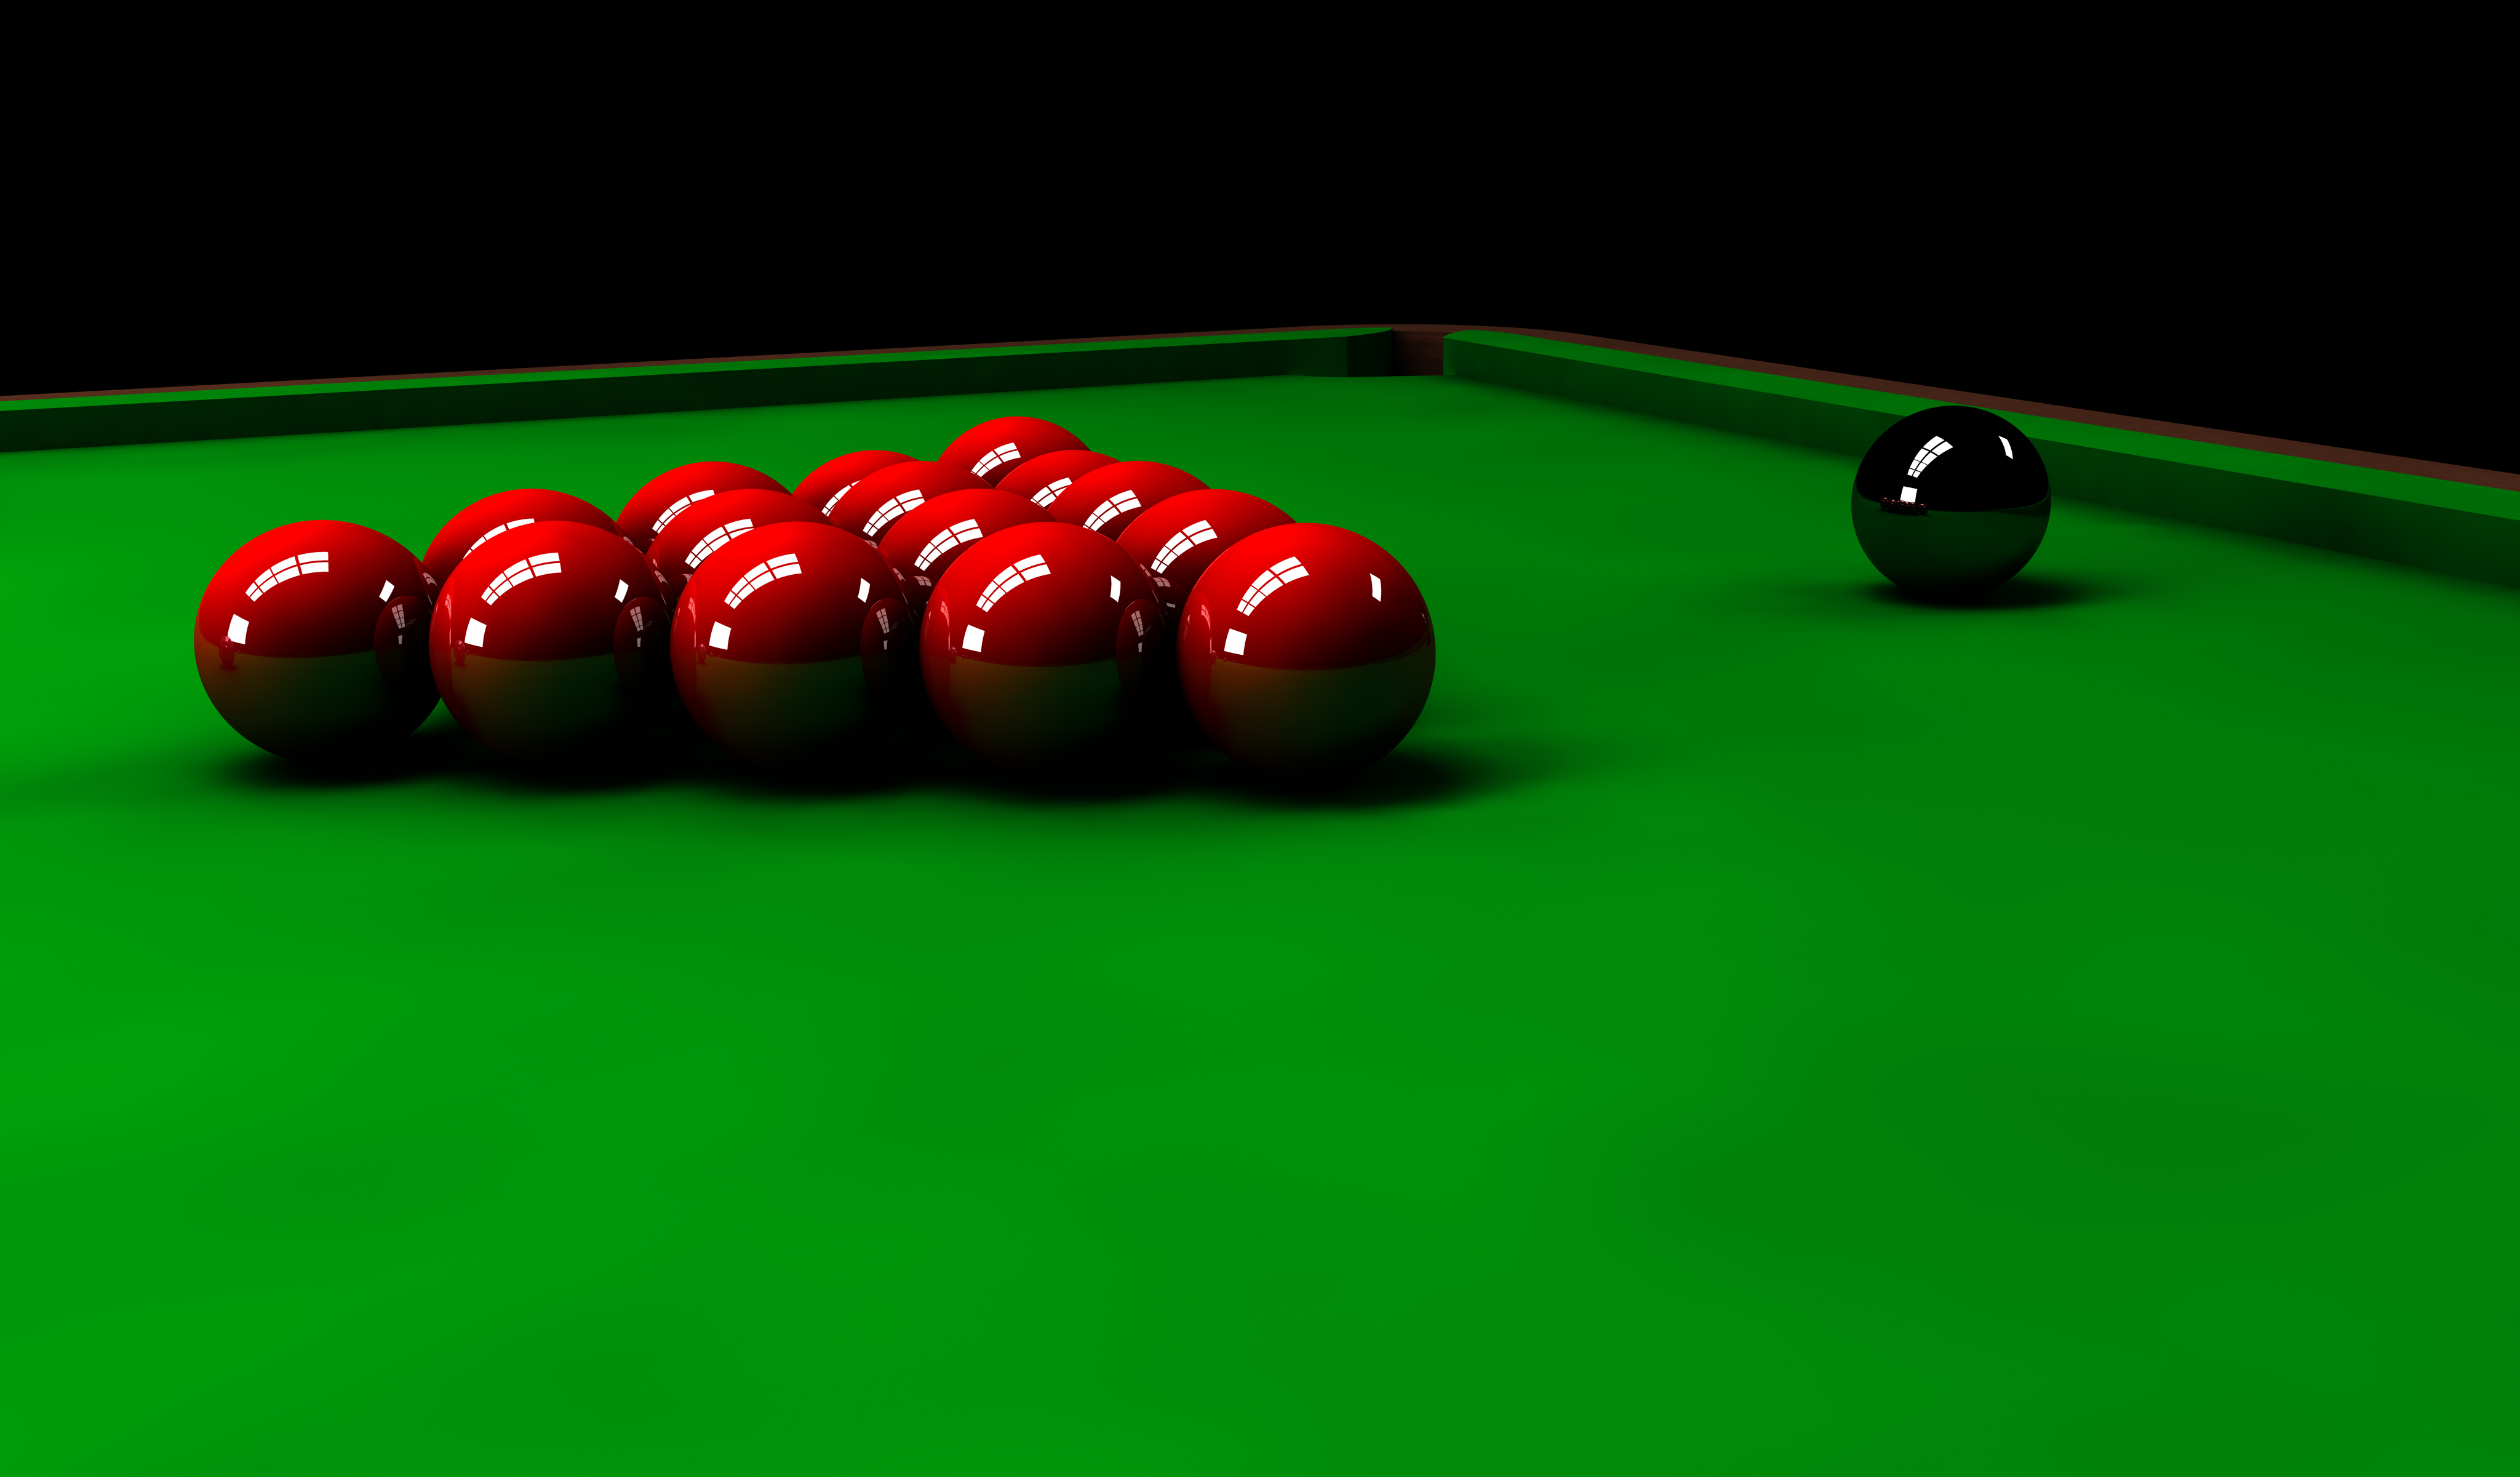 World Snooker Championships 2016 - Ante-post Preview